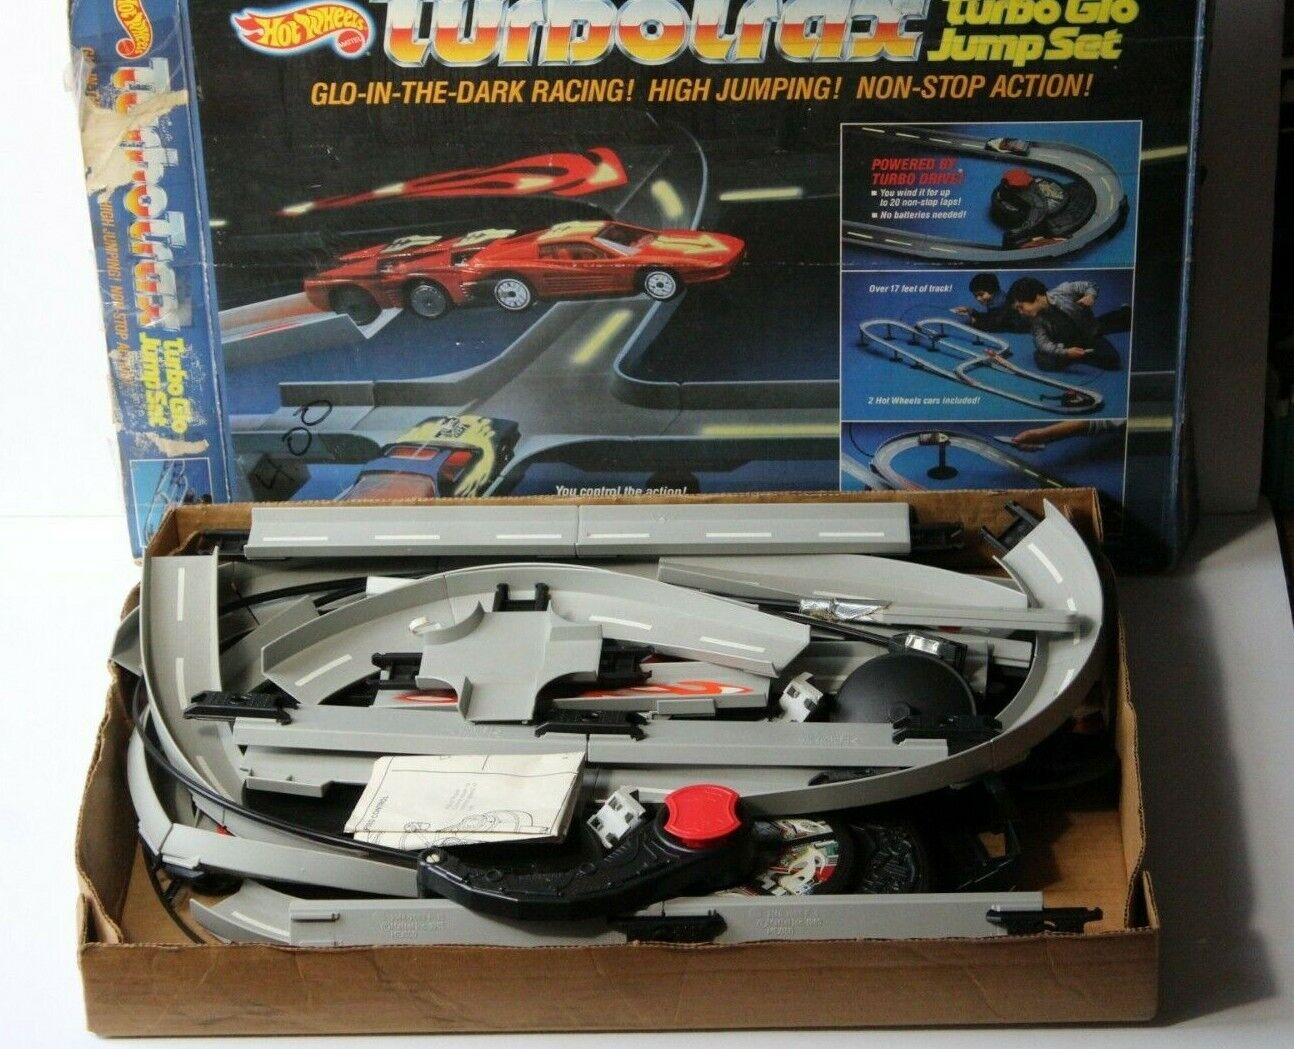 Vintage 1986 Hot Wheels Turbo Trax Racing Car Toy in Box Original Instructions